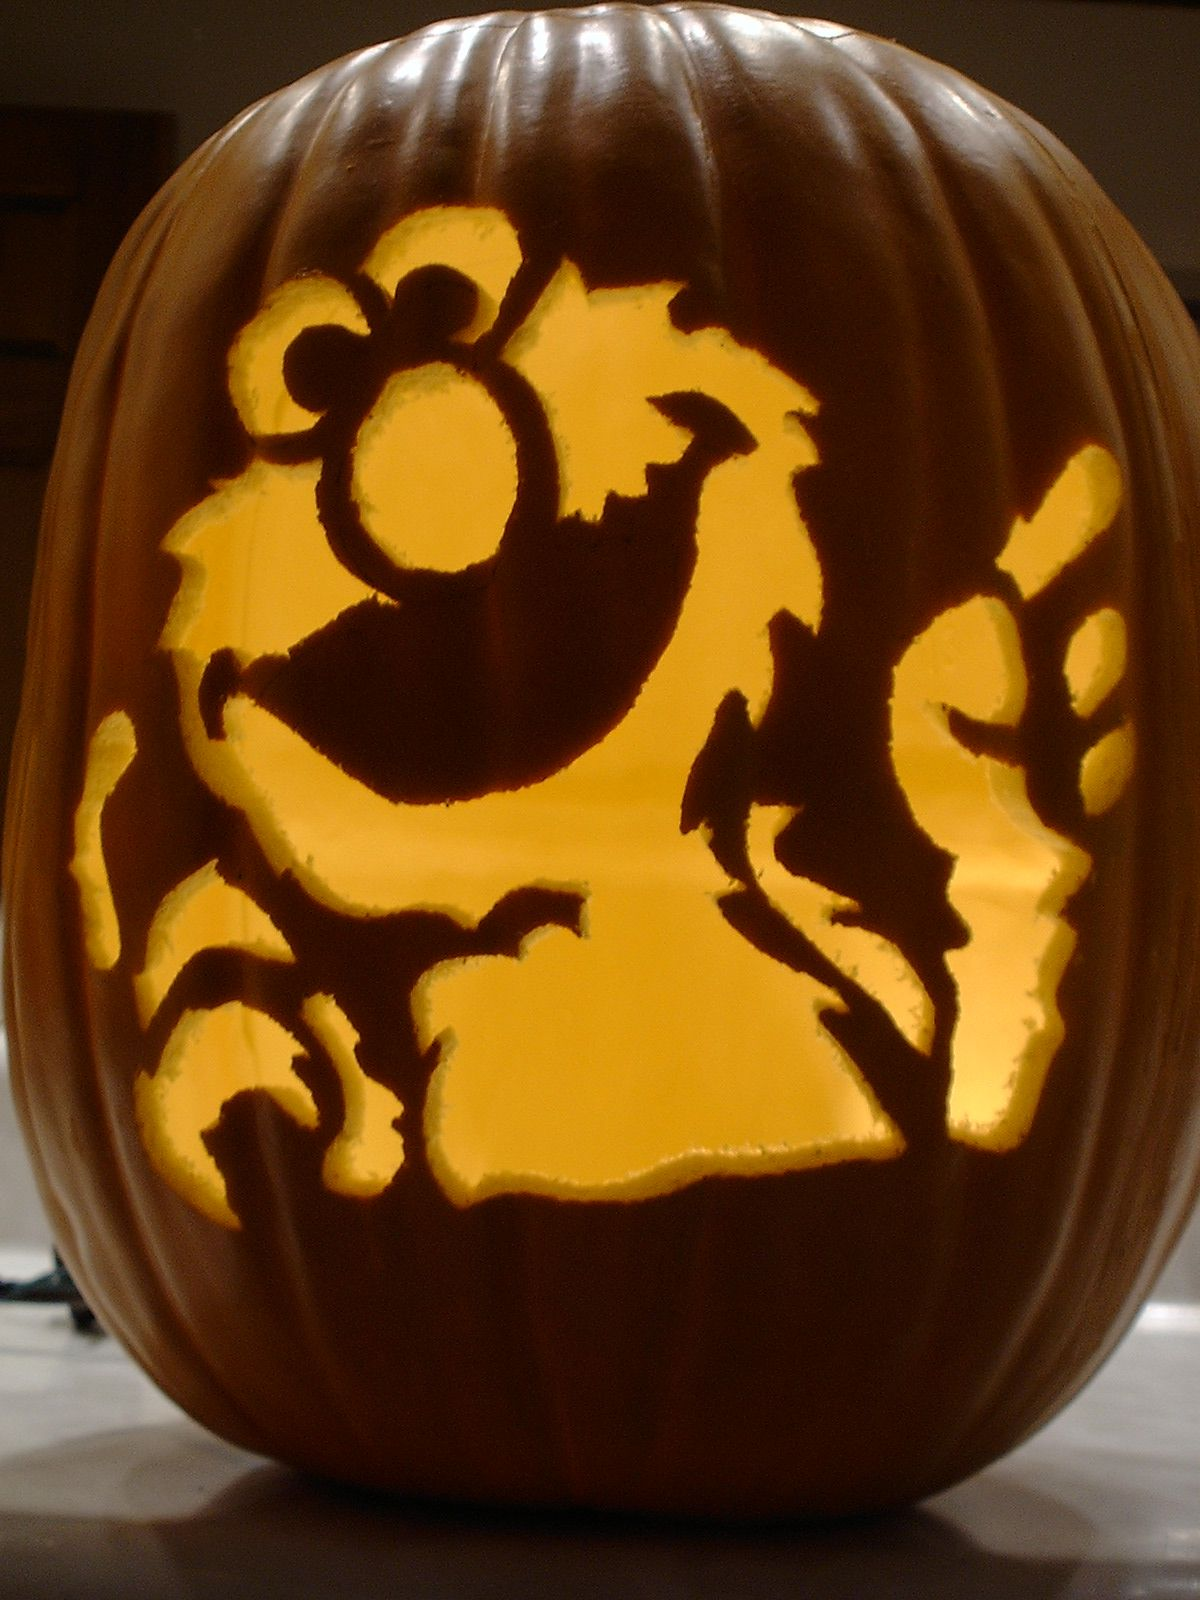 This Site Has Humdreds Of Halloween Pumpkin Carving Templates And